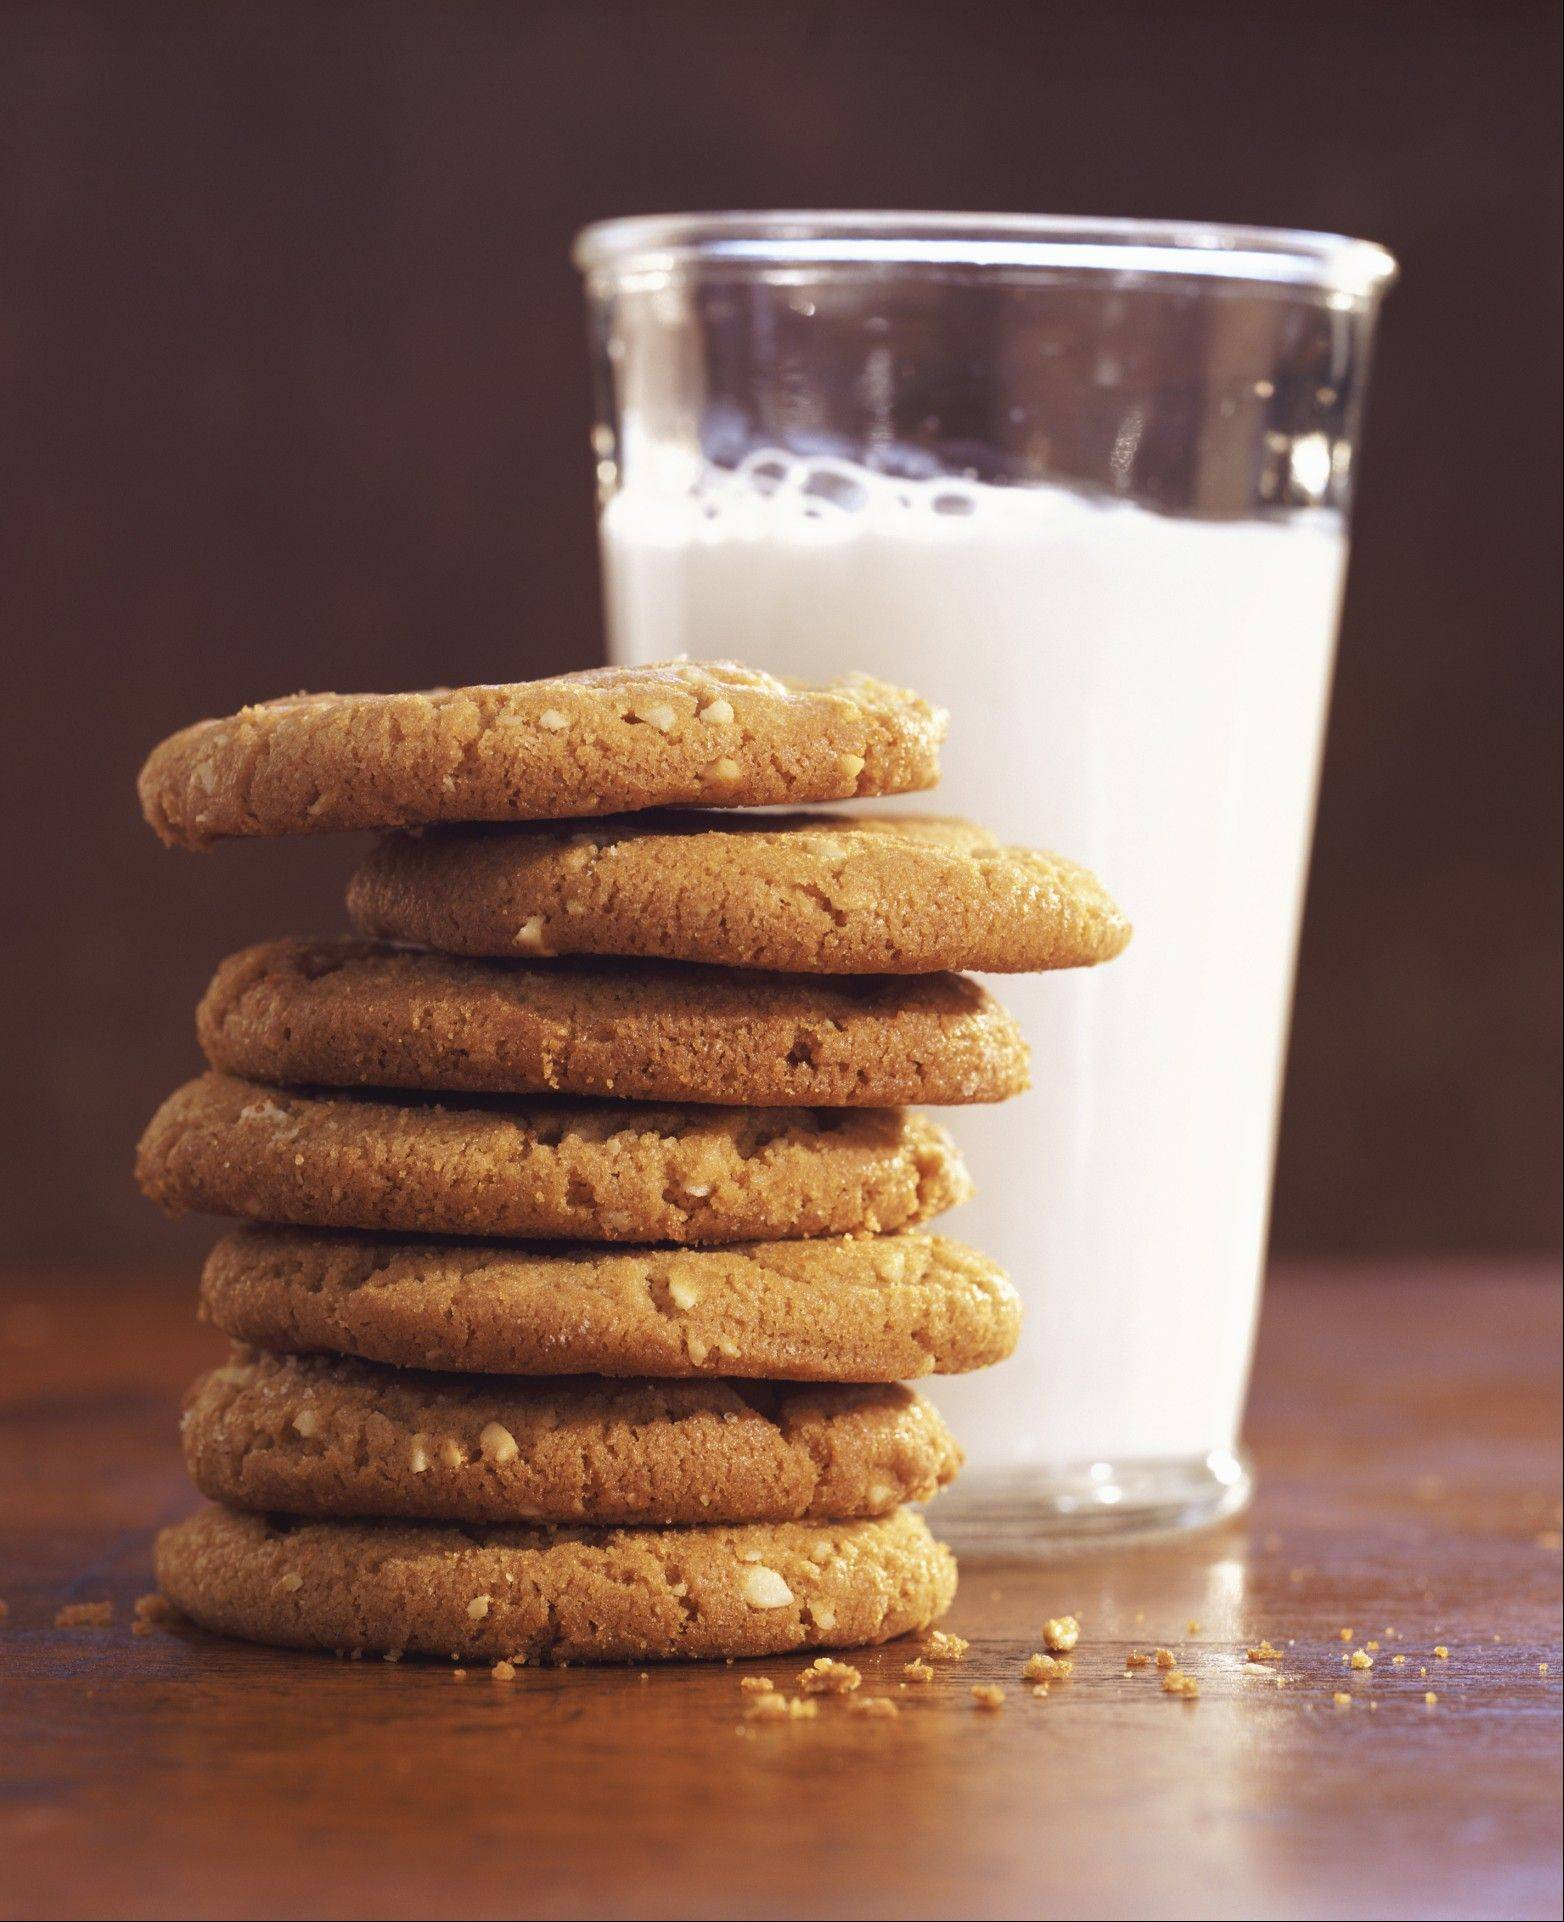 Craving sugary snacks such as cookies is a common symptom of seasonal affective disorder.